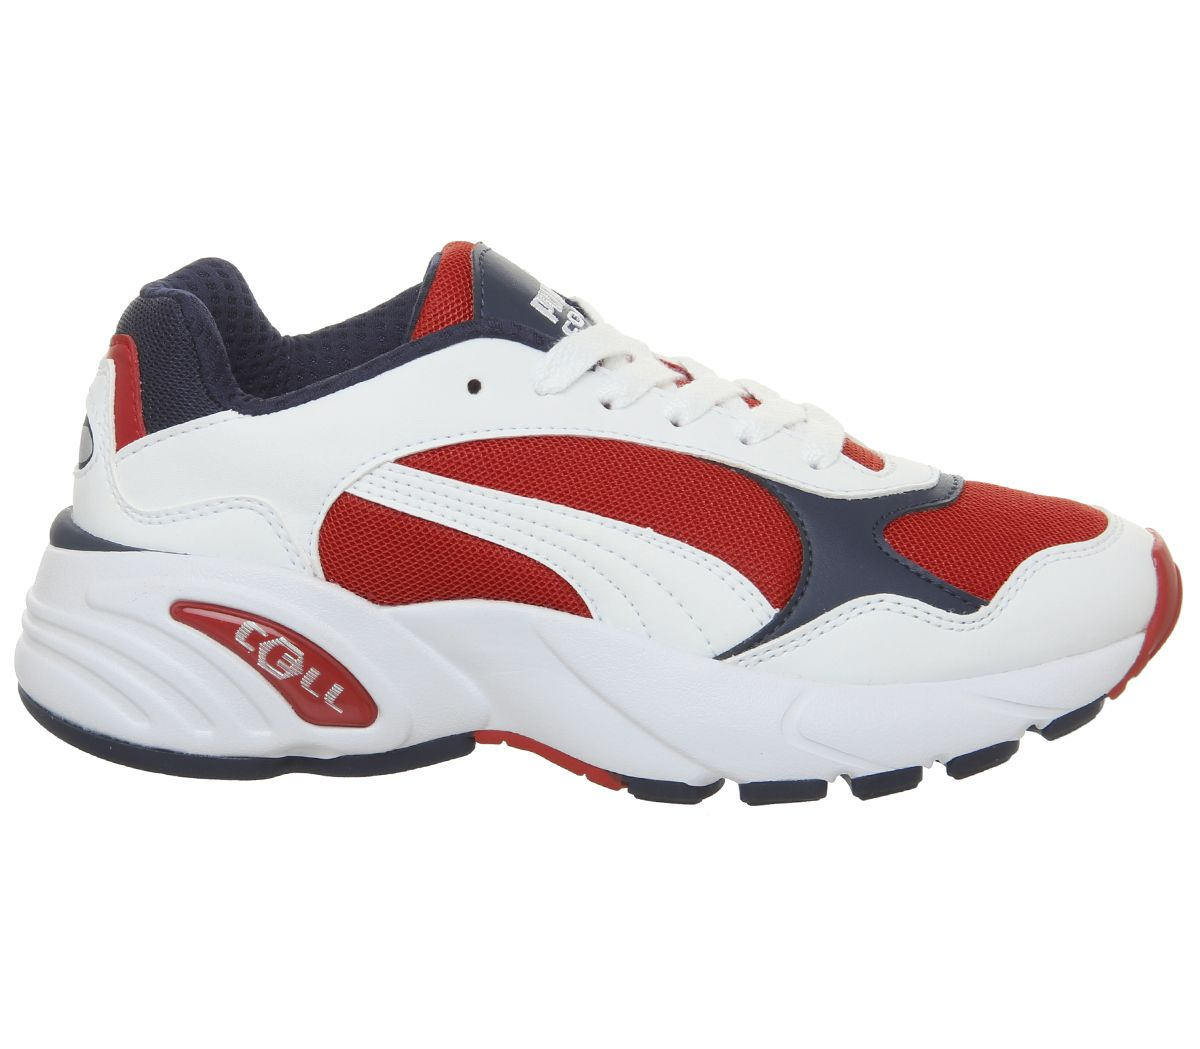 5896c9cd3d Sentinel Womens Puma Cell Viper Trainers Puma White High Risk Red Trainers  Shoes